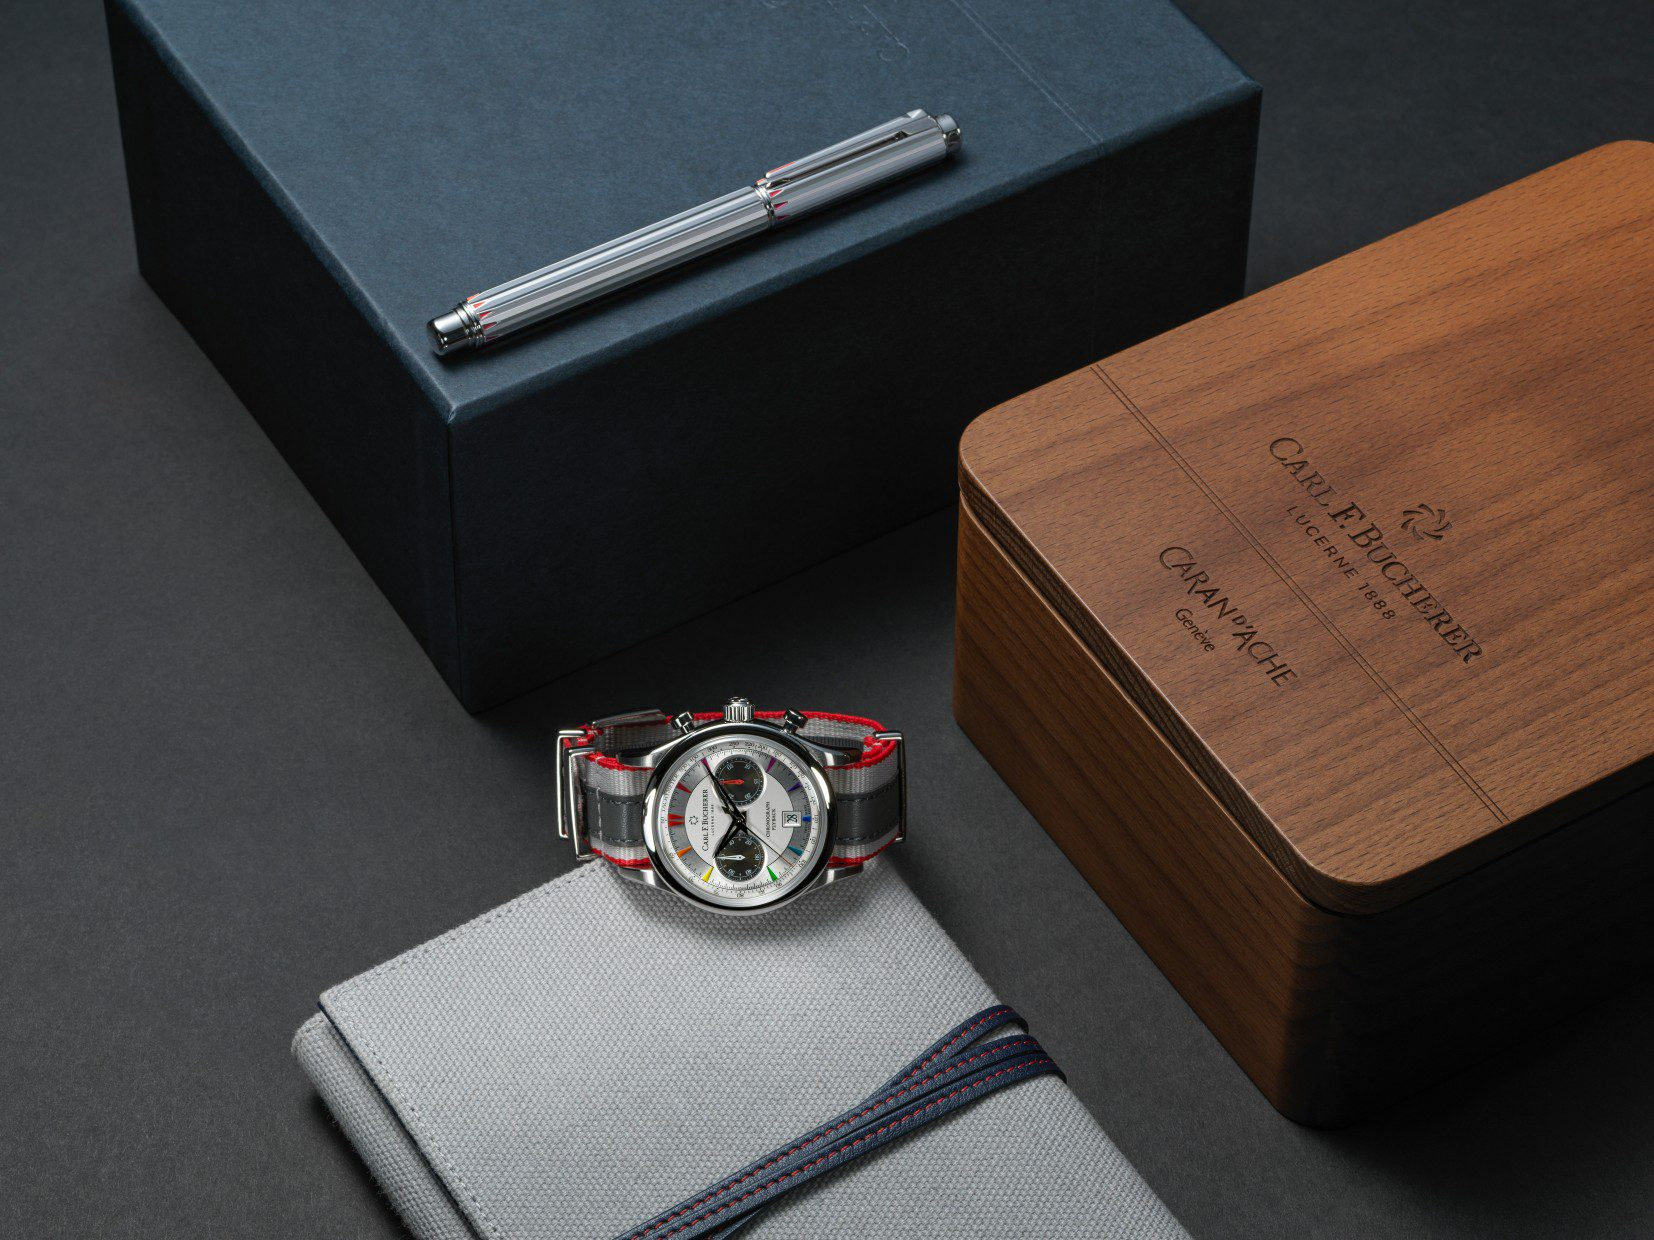 Carl F. Bucherer Manero Flyback Signature watch and the Caran d'Ache Signature rollerball pen.